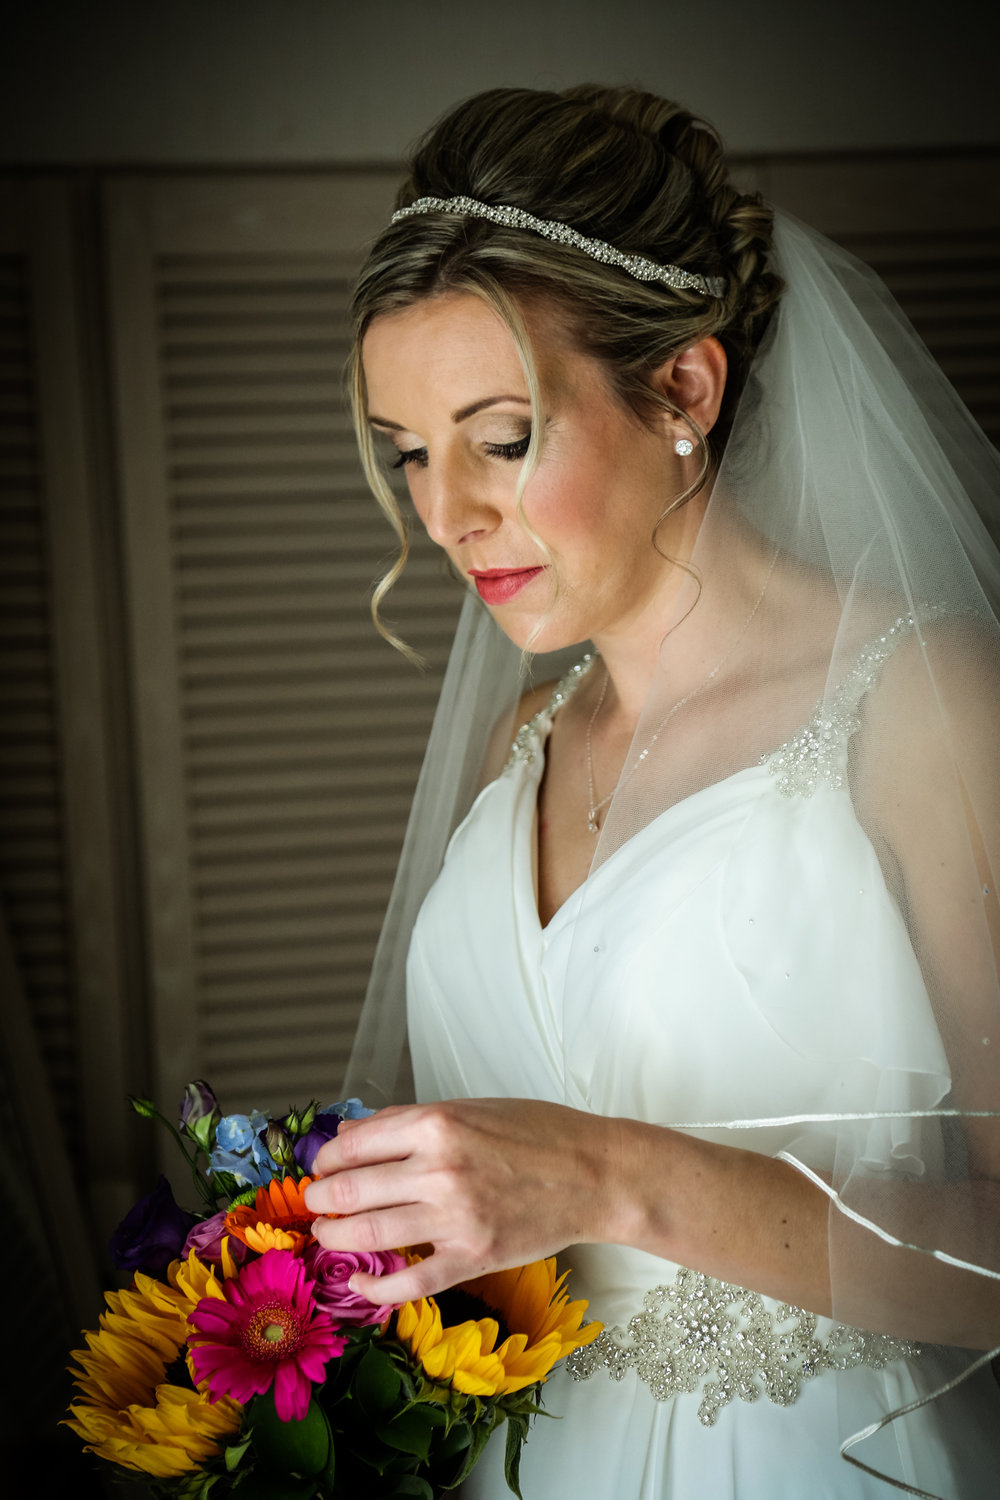 LorraineWeddingmake-up.jpg